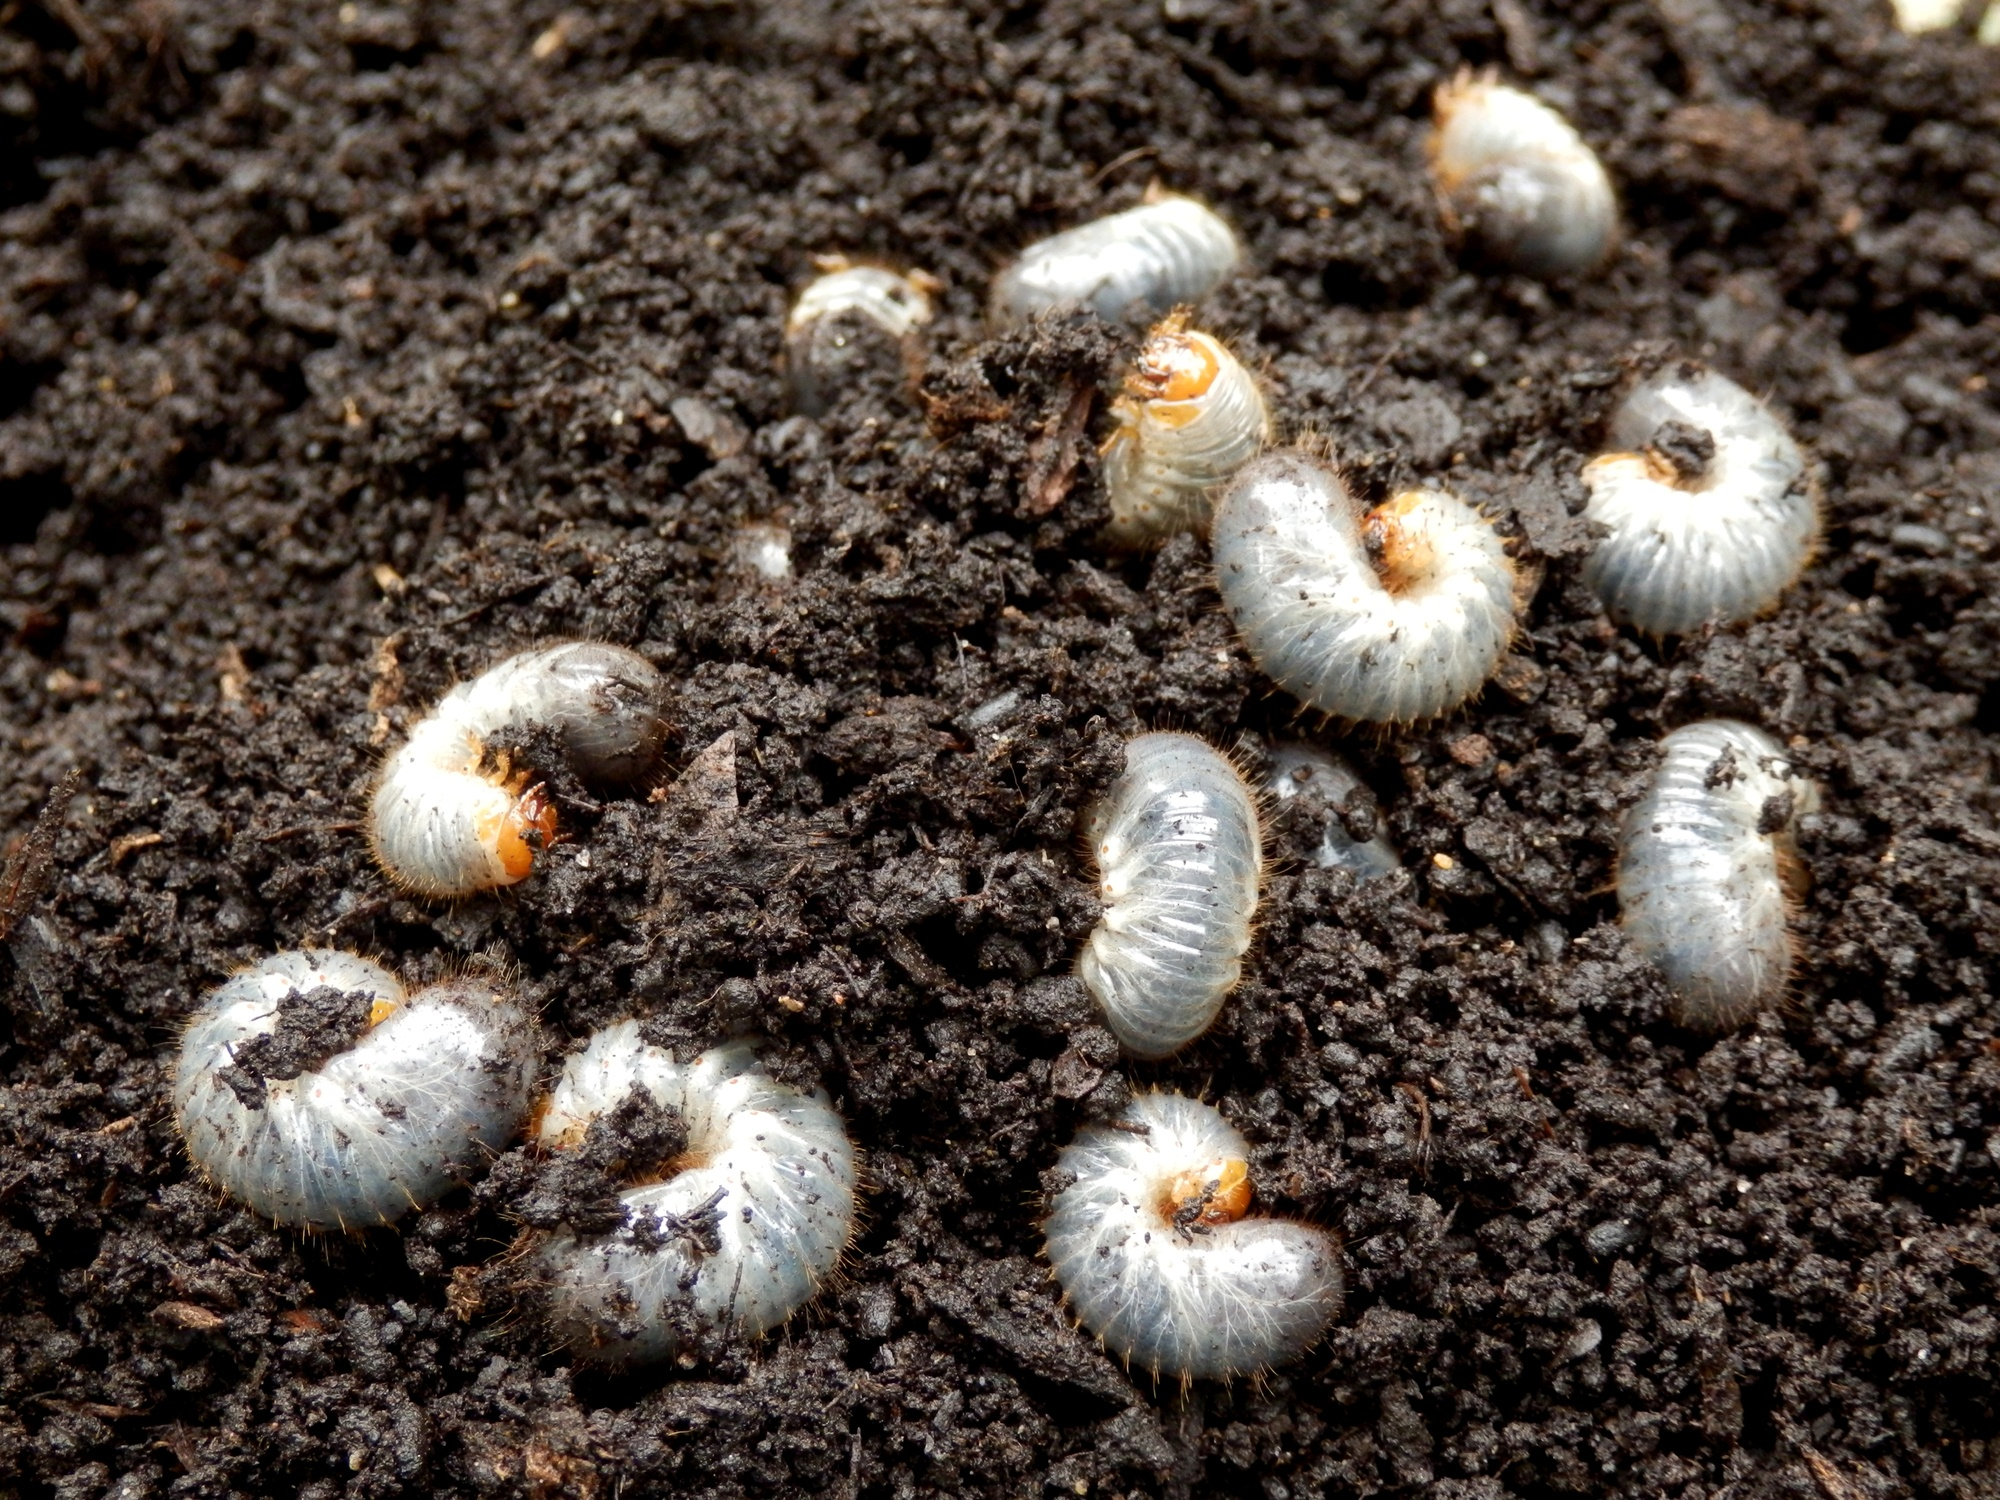 Grub Talk: The Life Cycle of the White Grub - Featured Image